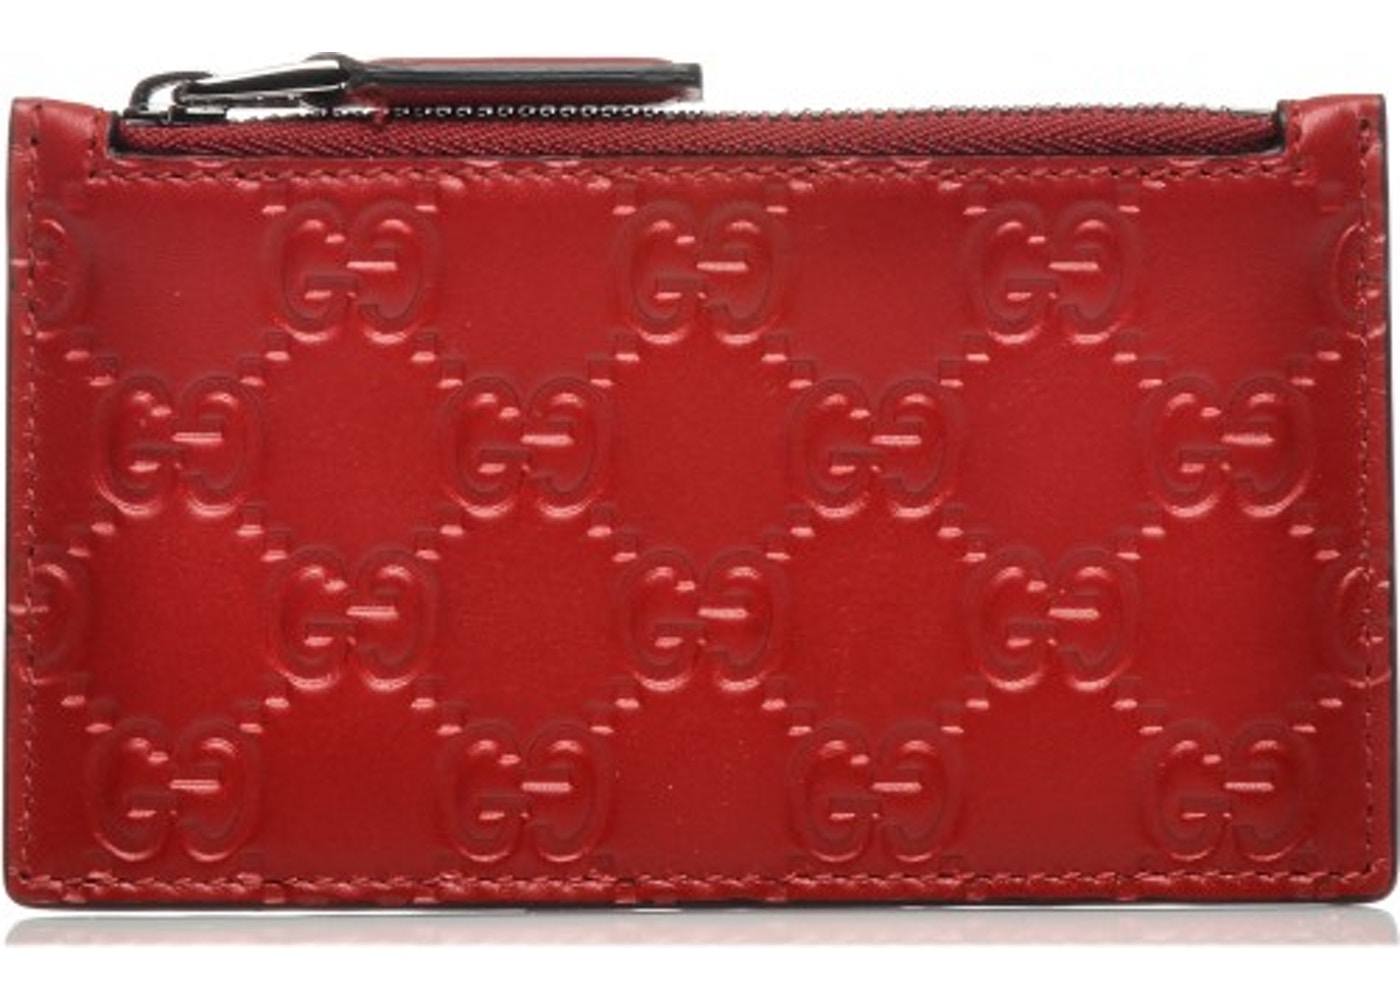 941b99ac486 Gucci Zip Coin Pouch Card Case Guccissima Red. Guccissima Red